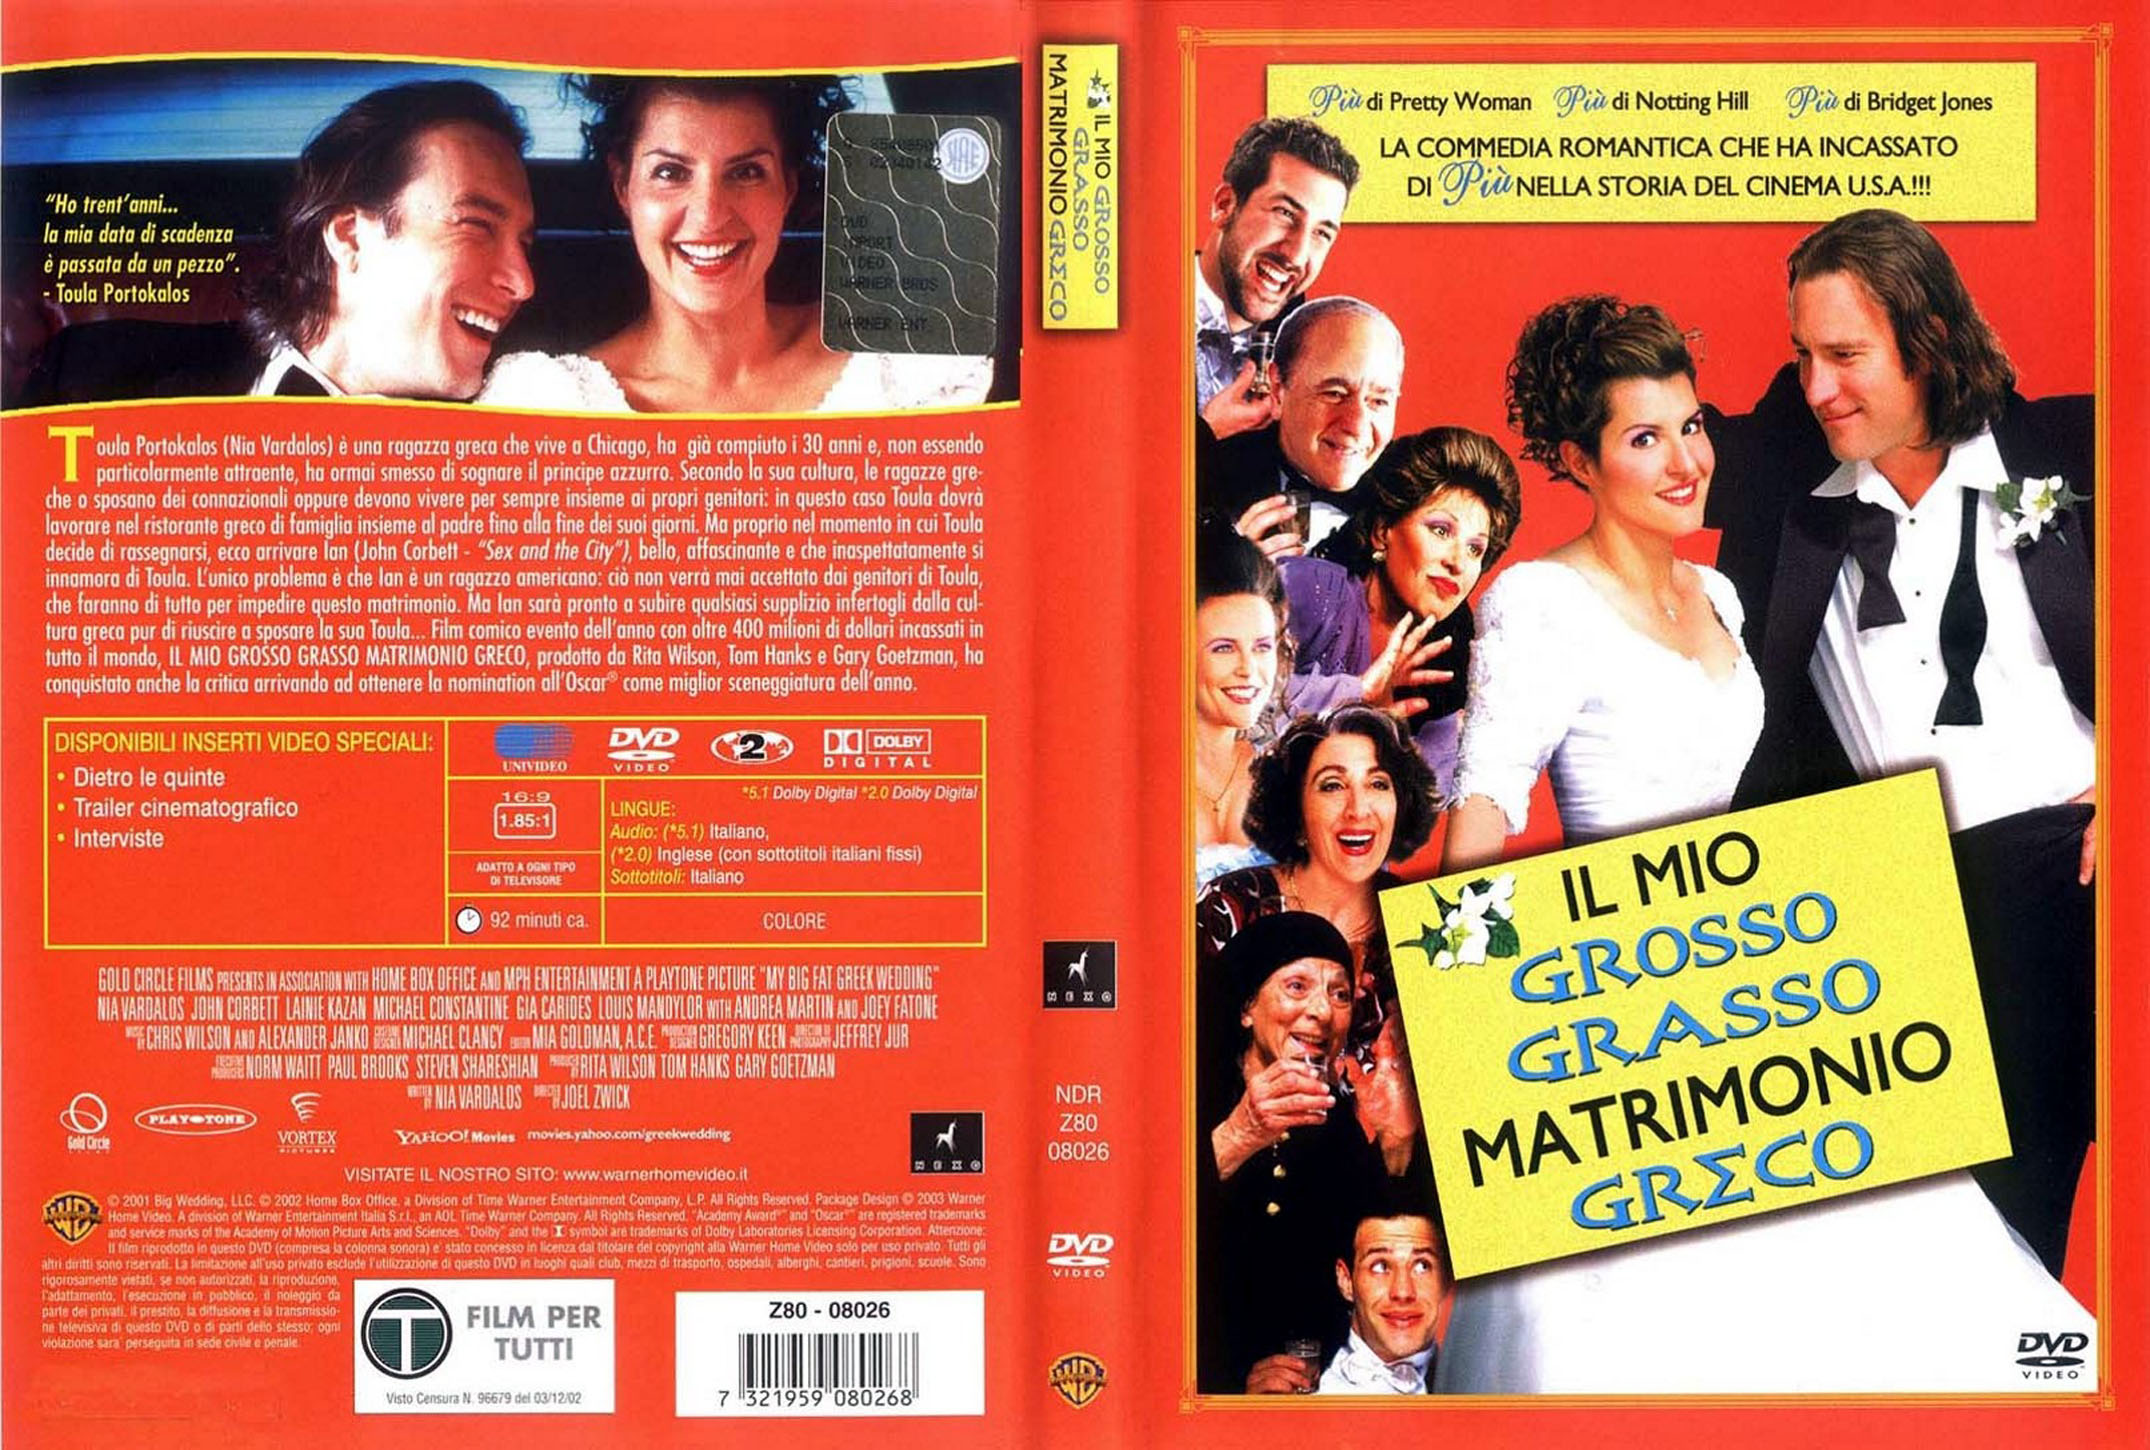 e dating film gratis